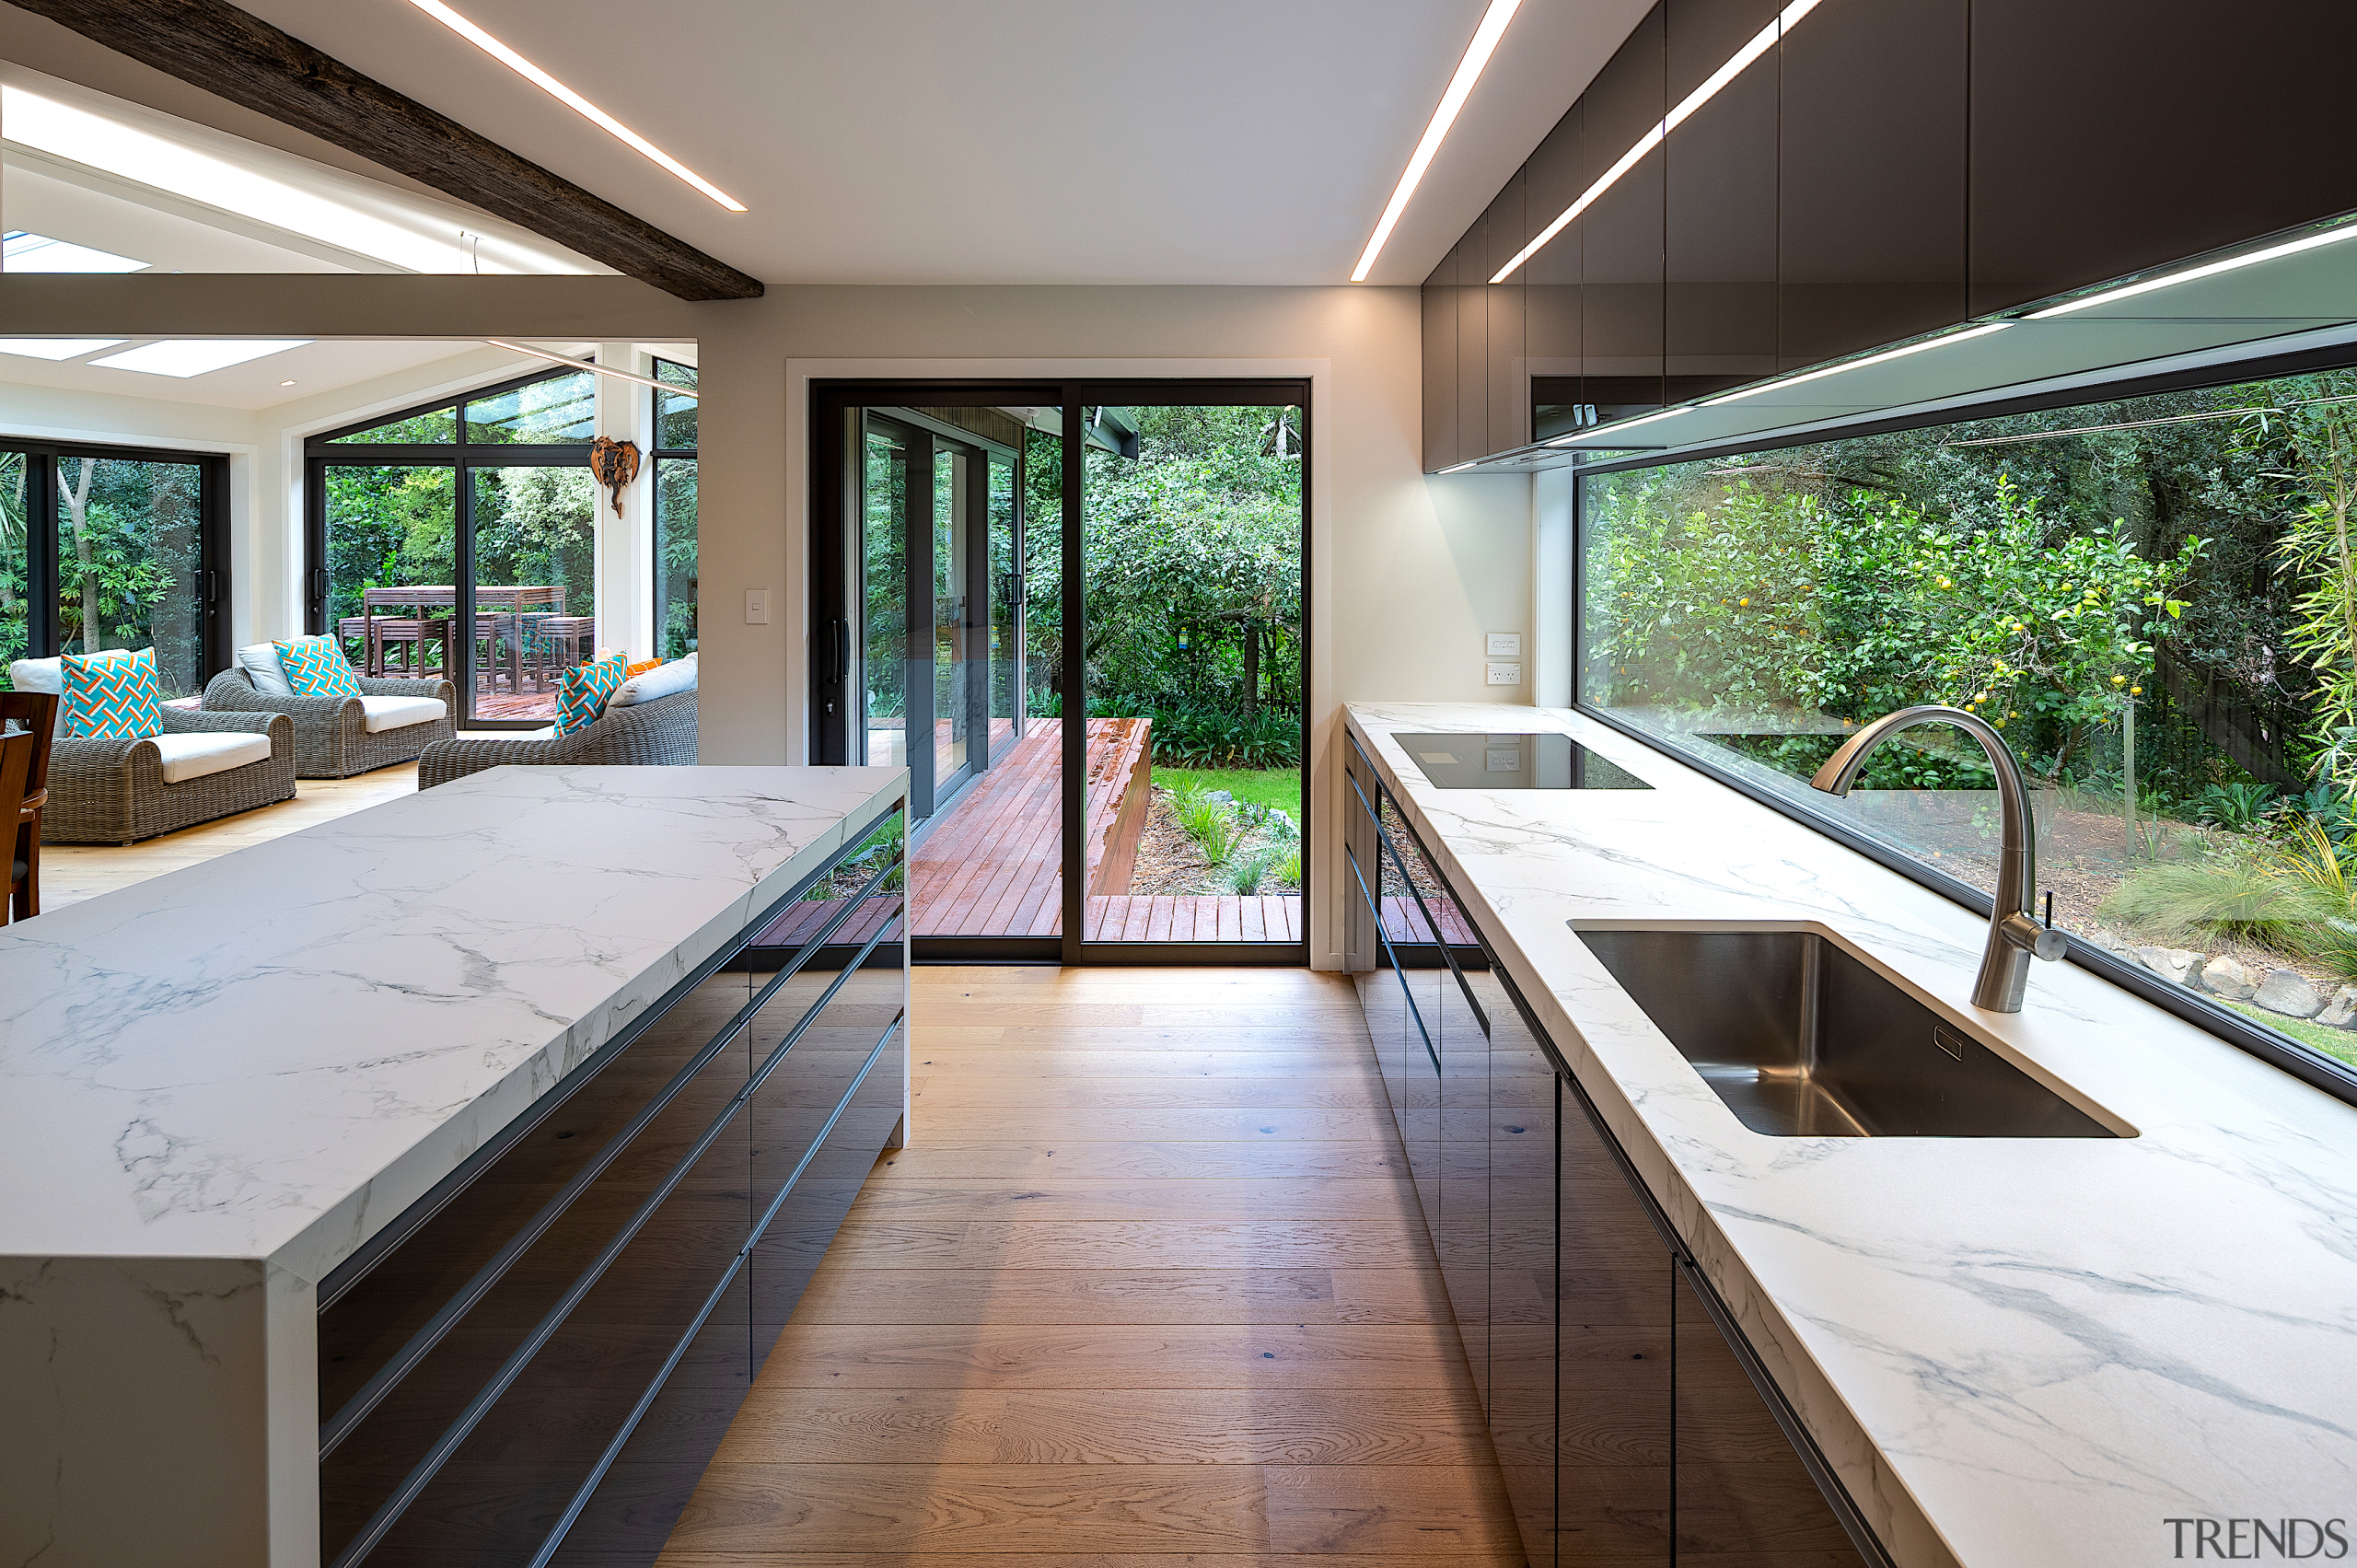 Recessed pulls on the cabinetry optimise ease of